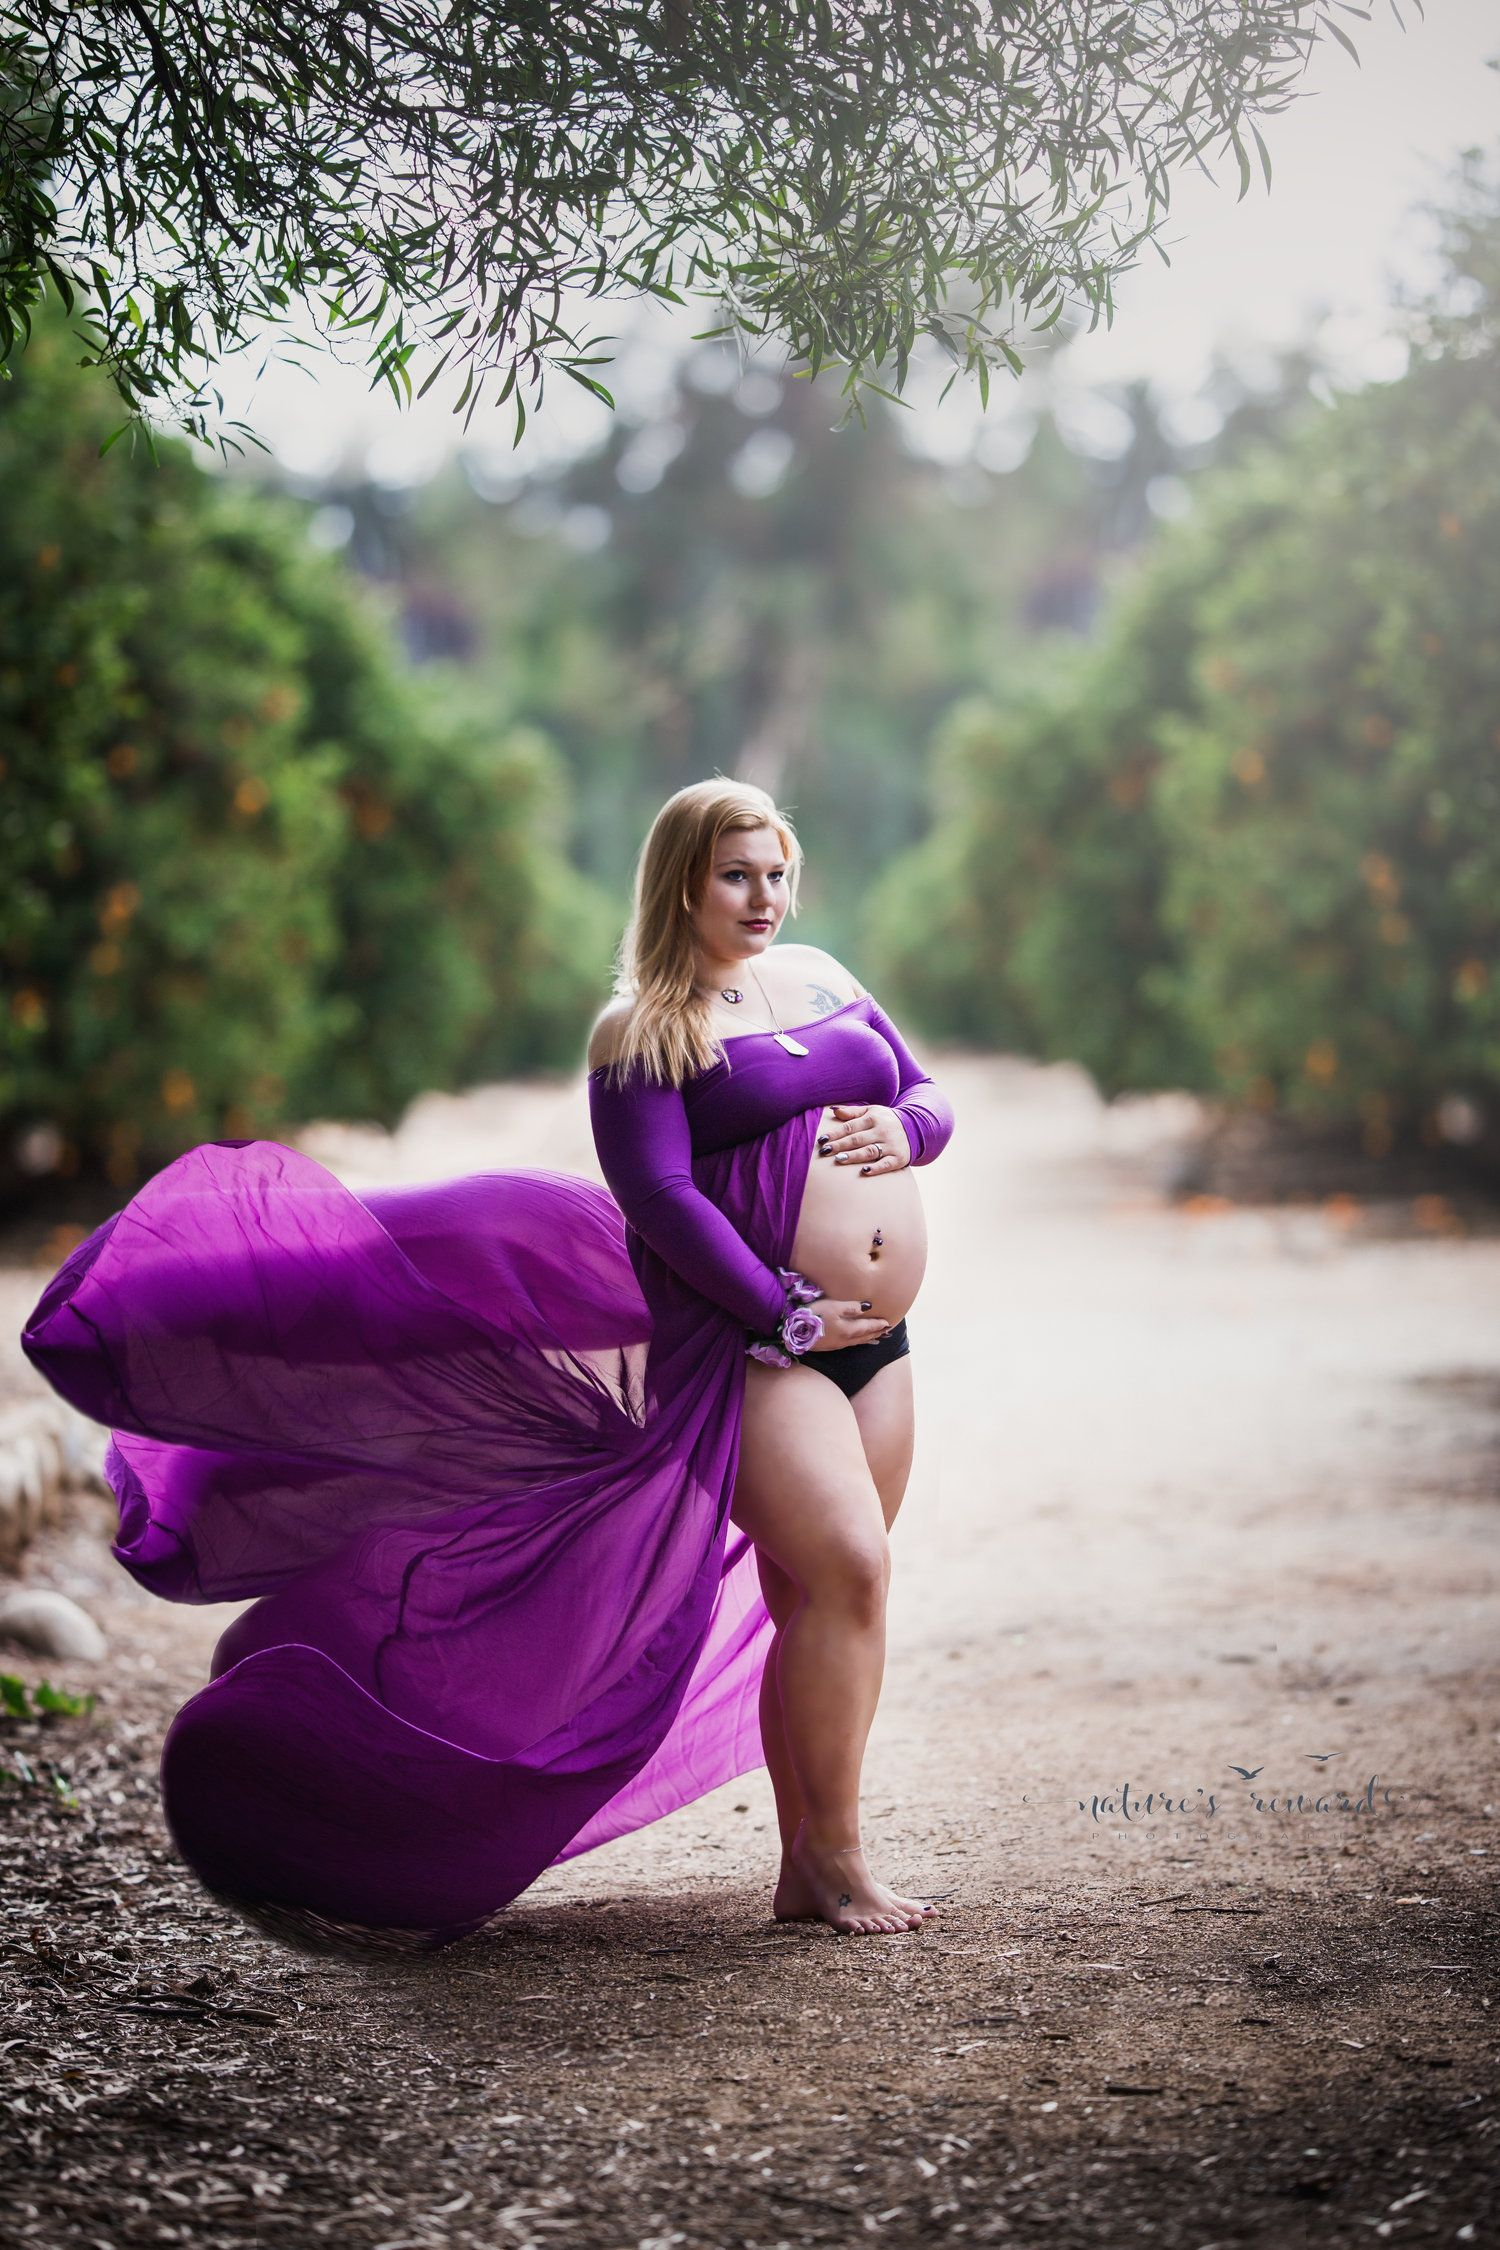 Cabazon Resident In a Maternity Portrait Session Photography Session ...